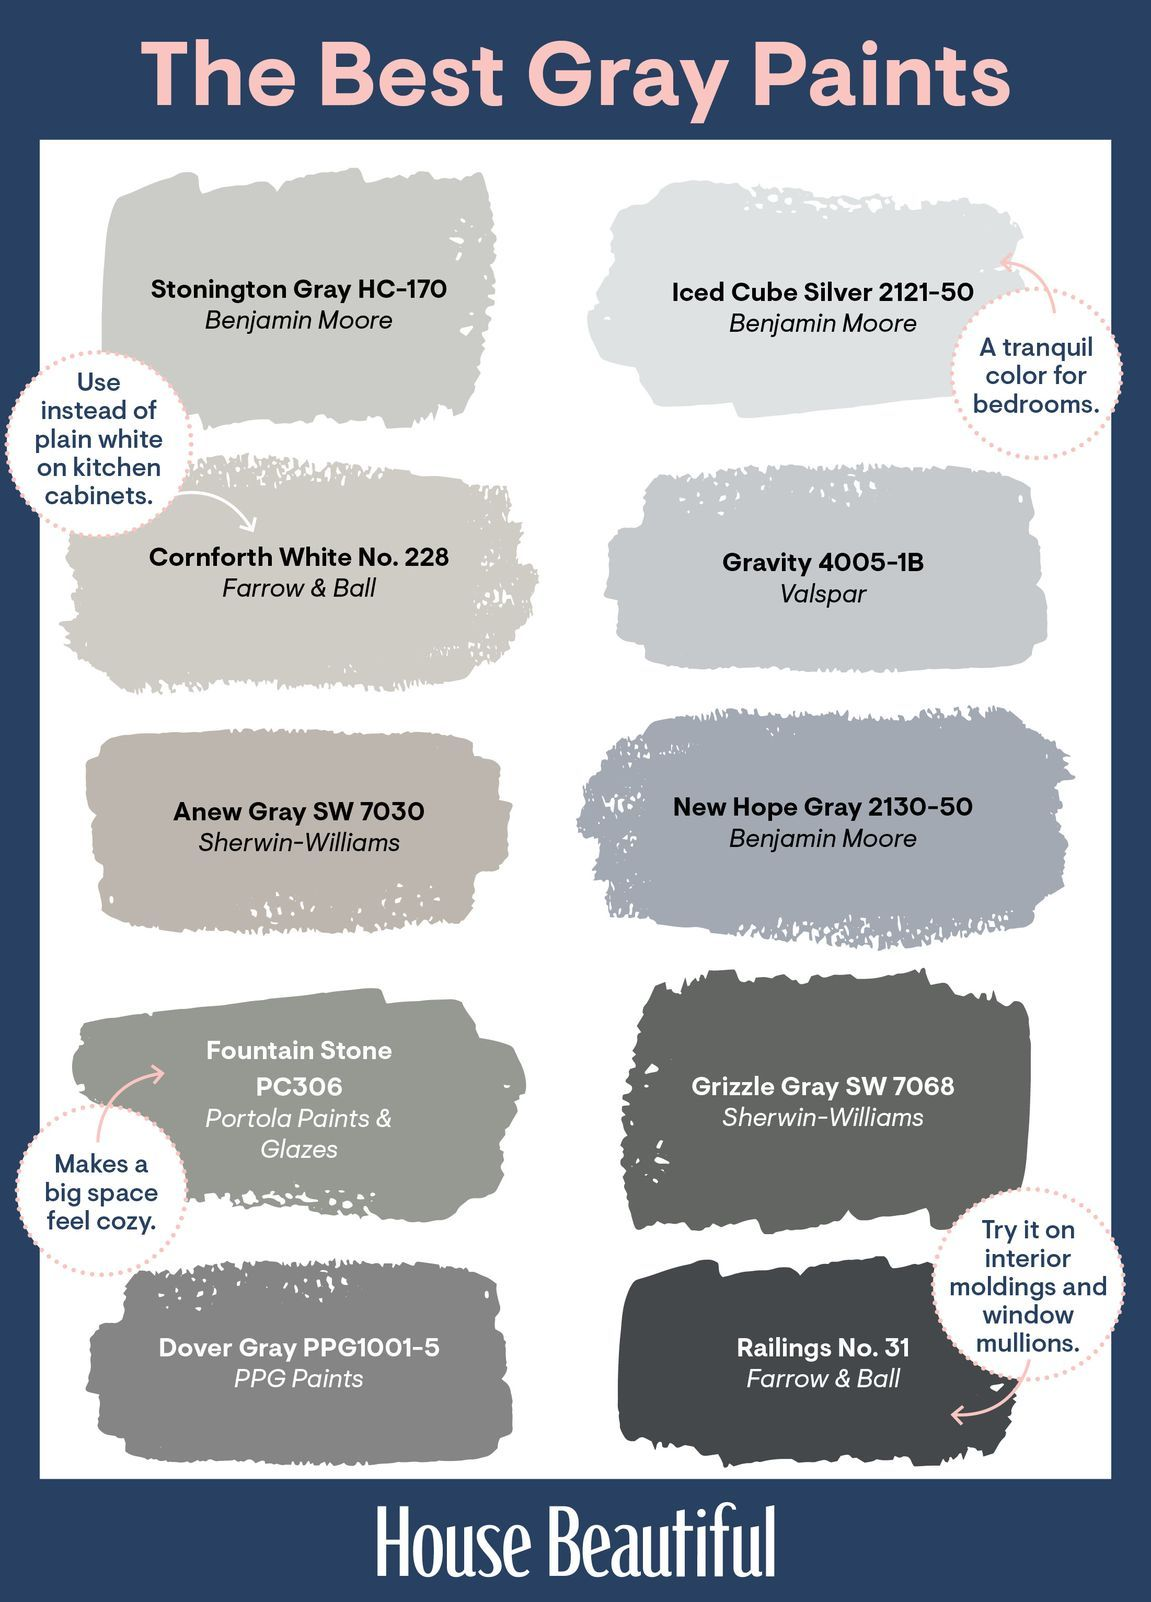 28 Best Shades Of Gray Paint According To Designers Best Gray Paint Best Gray Paint Color Blue Gray Paint Colors